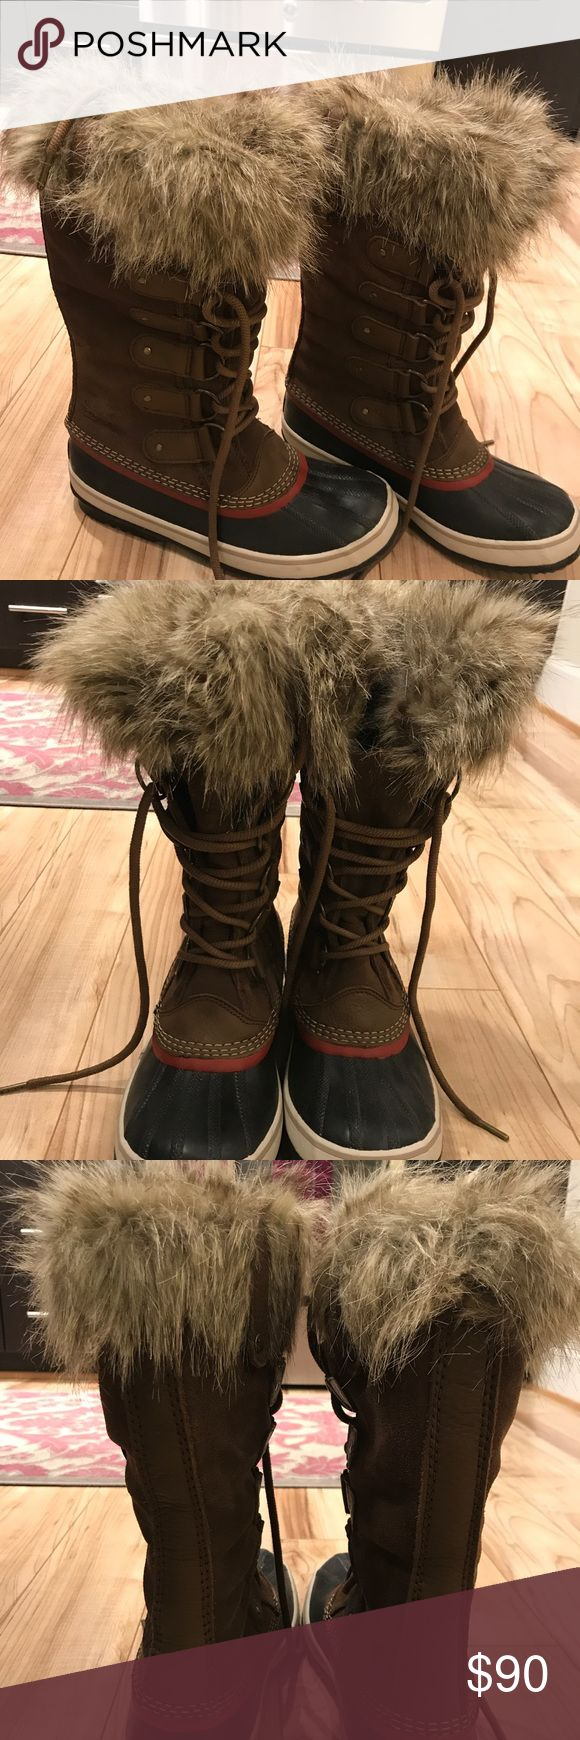 Sorel Joan of Arctic Women's Cold Weather Boots Sorel Women's Joan of Arctic winter boots worn one time, like brand new! Sorel Shoes Winter & Rain Boots